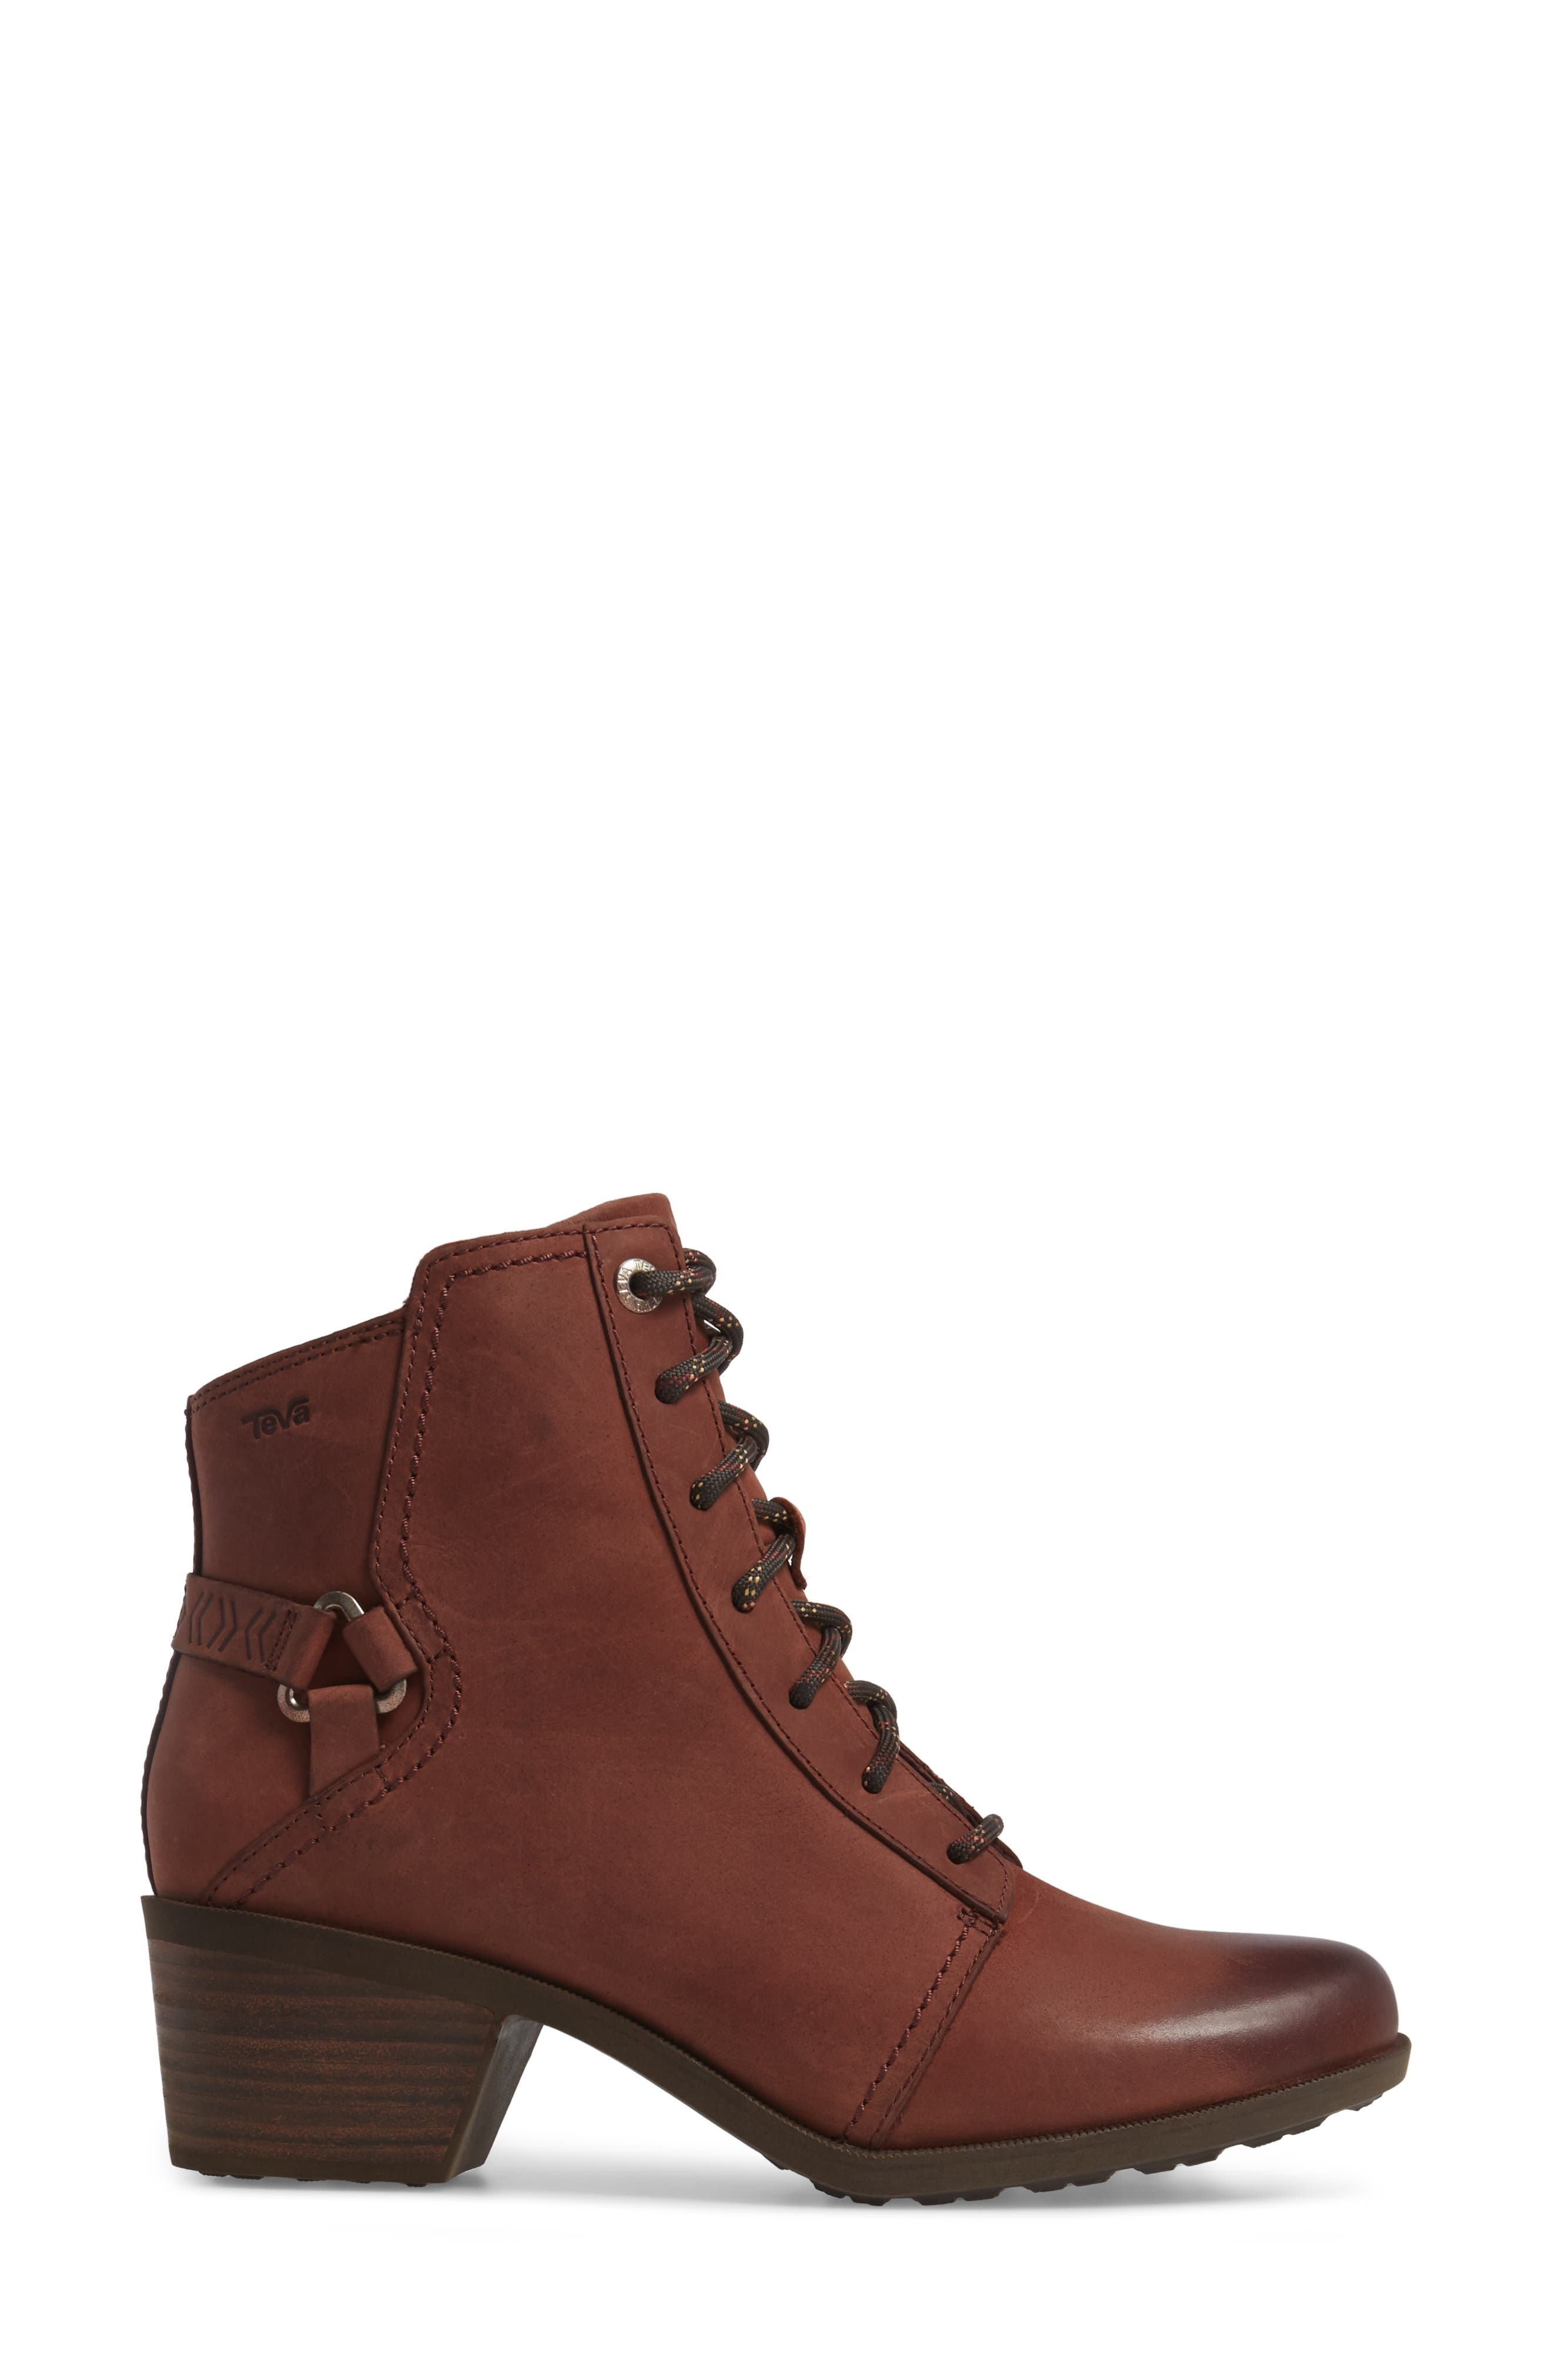 Foxy Lace-Up Waterproof Boot,                             Alternate thumbnail 3, color,                             Redwood Leather